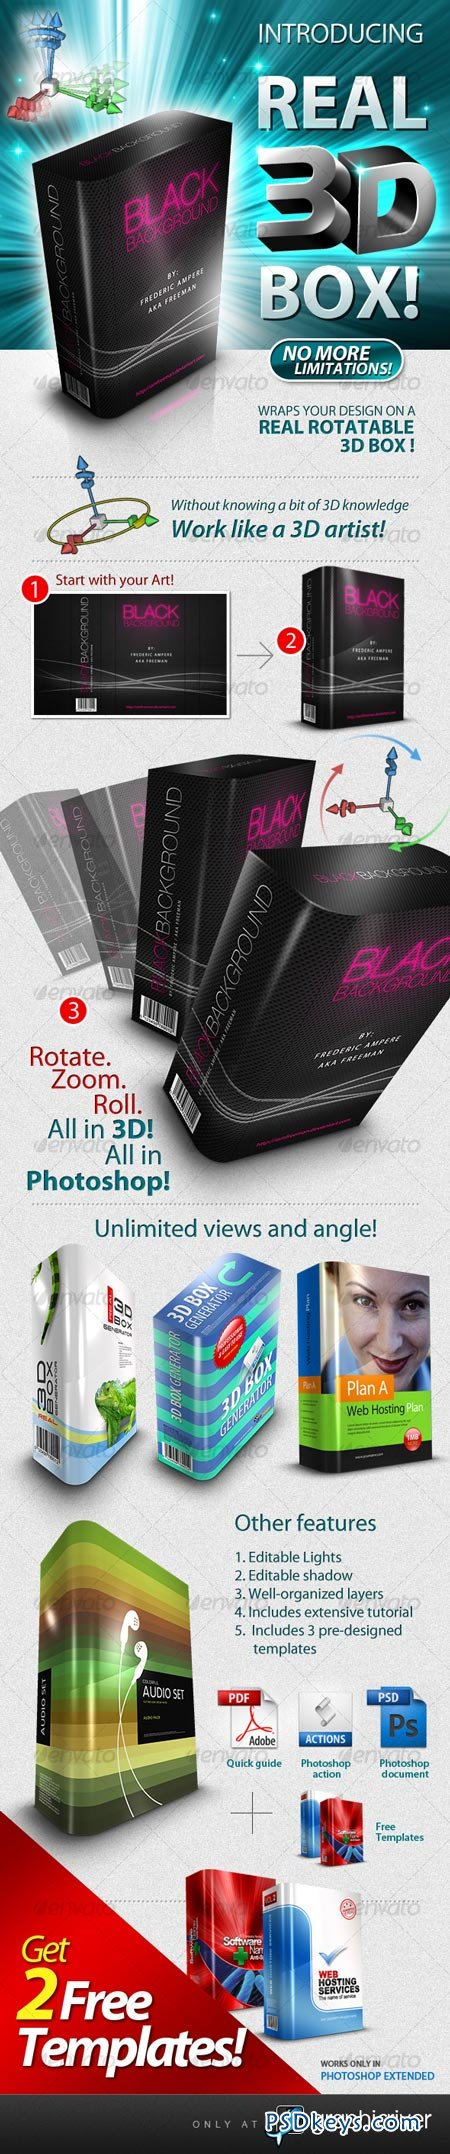 Real 3D Box Generator & Template! 105966